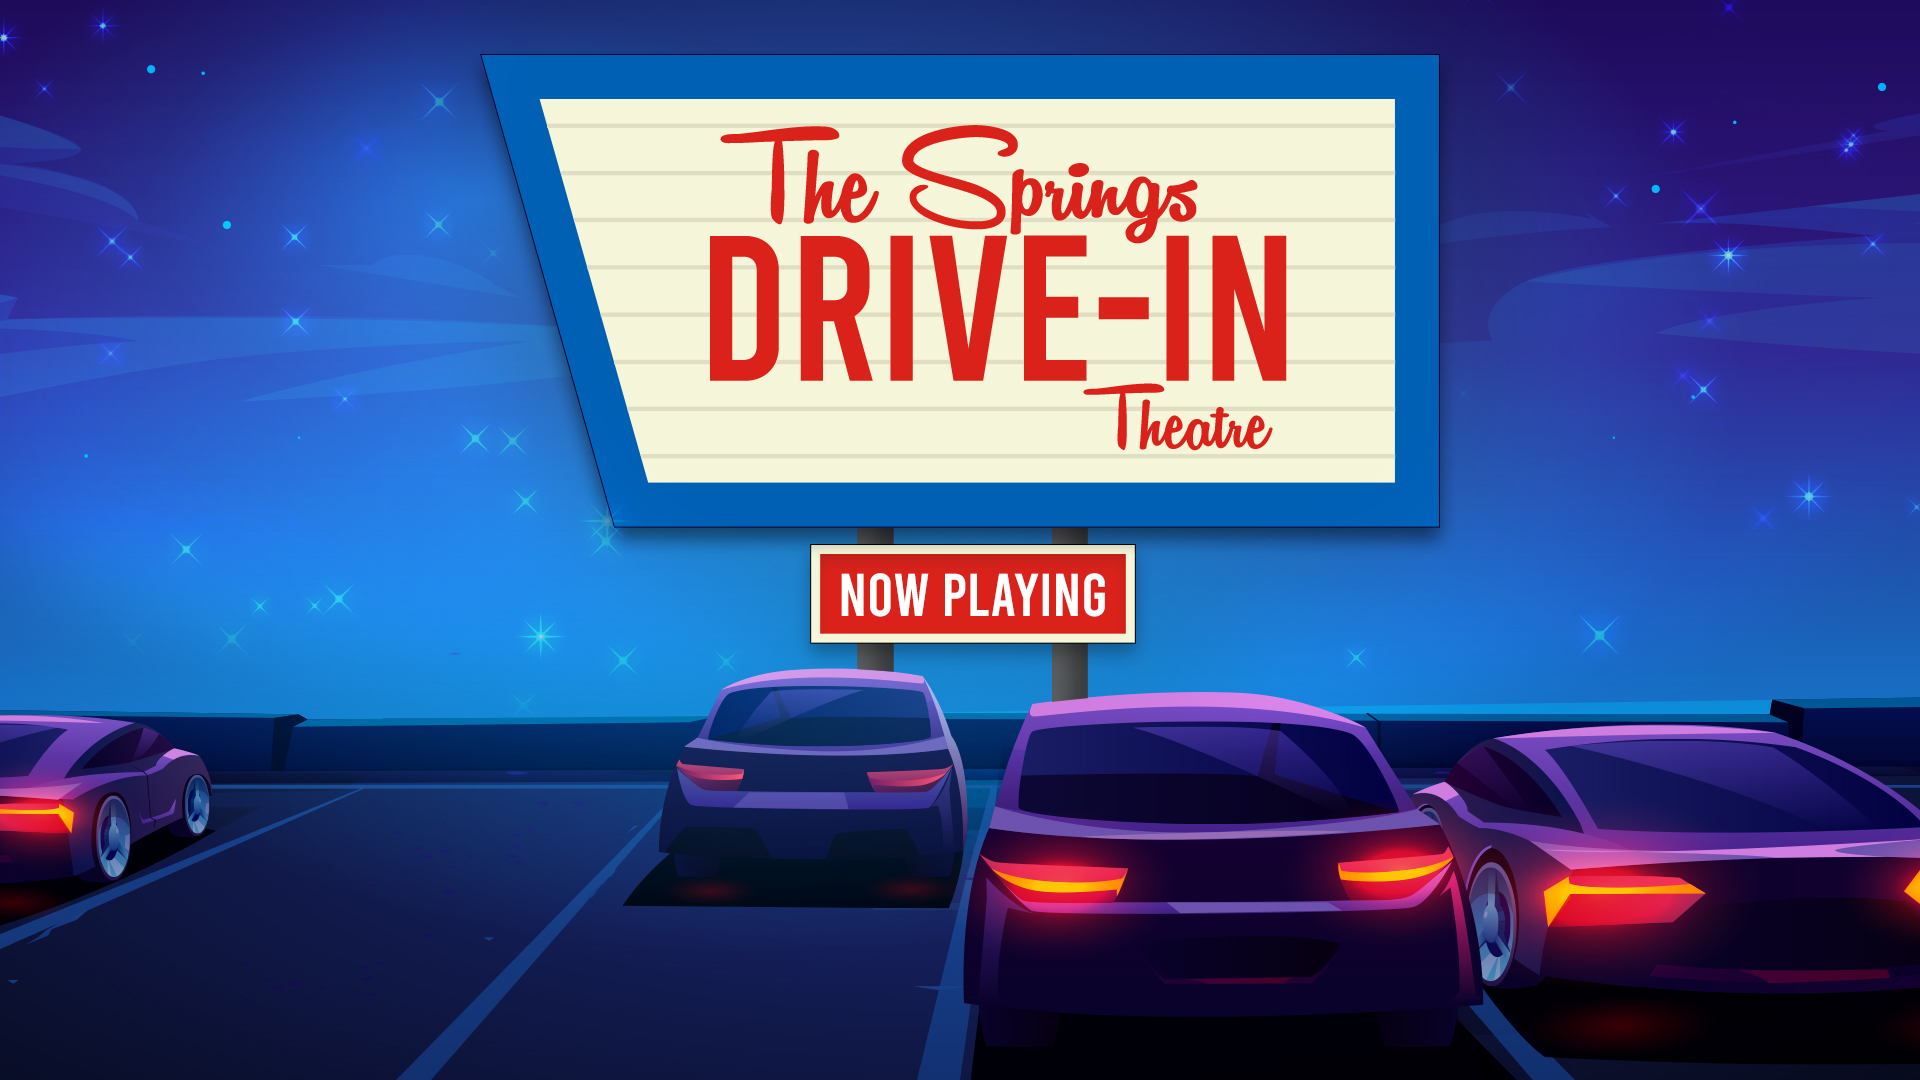 The Springs Drive-In Theatre